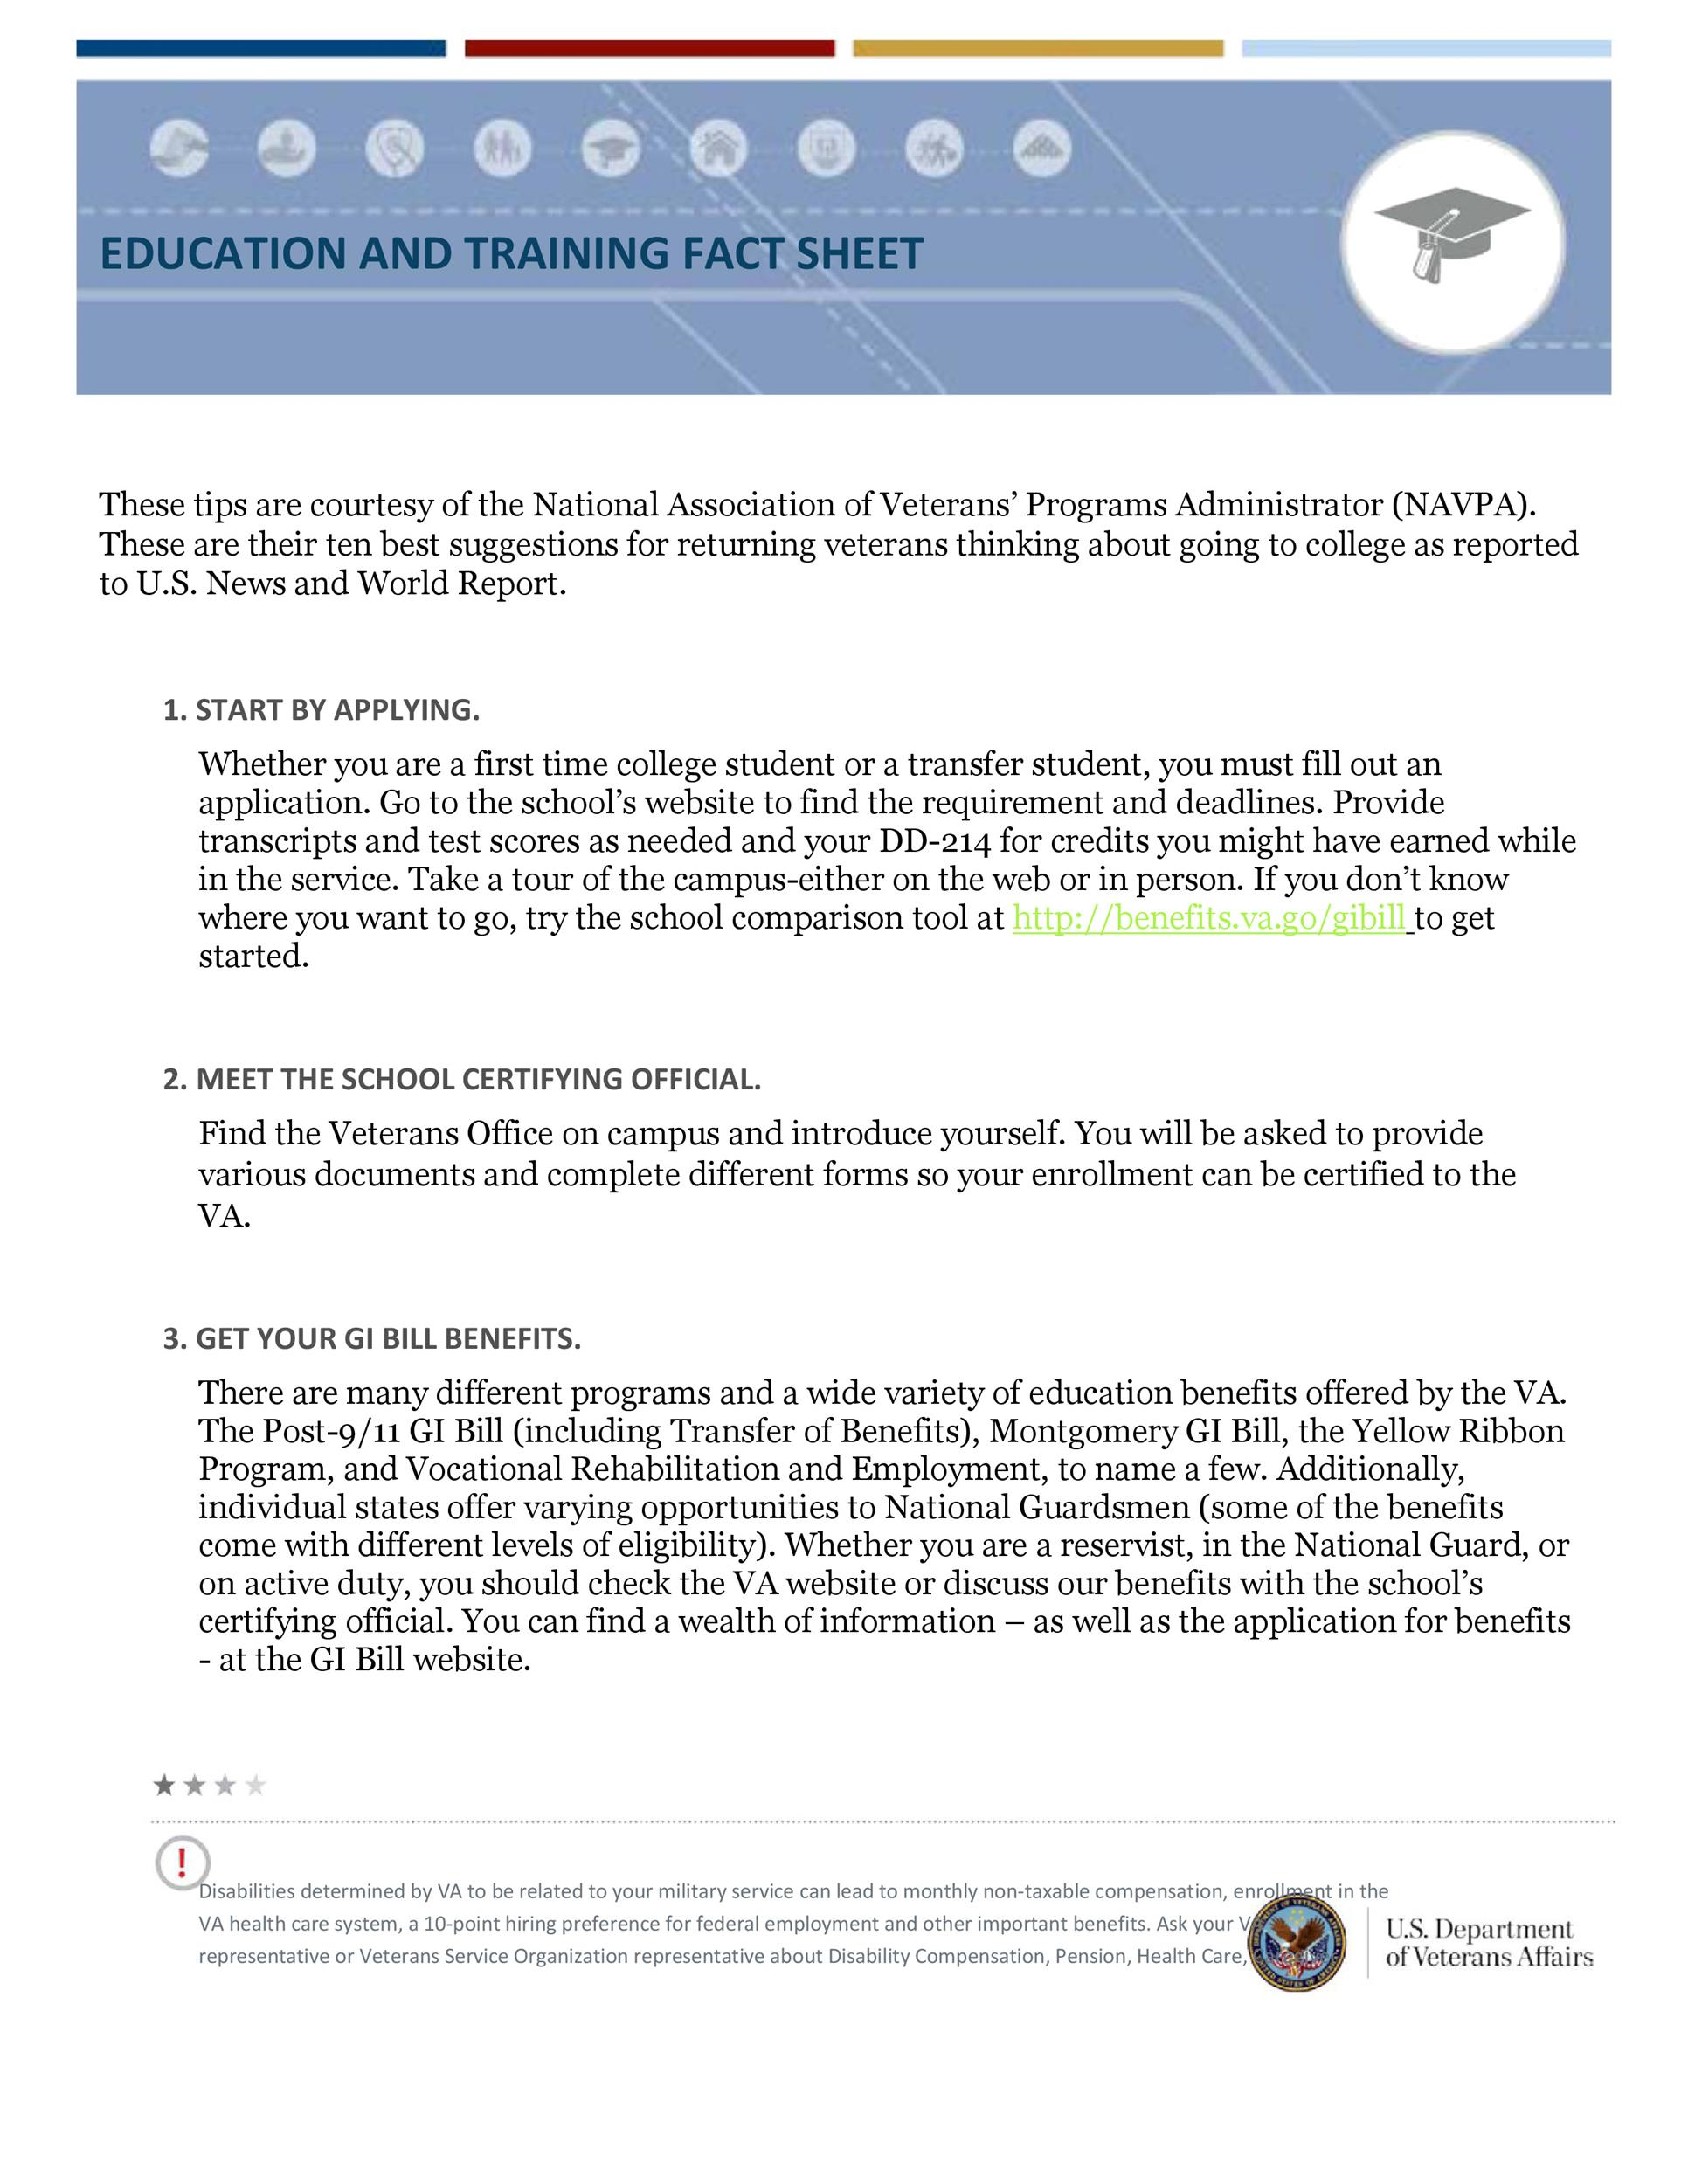 Free Fact sheet Template 19